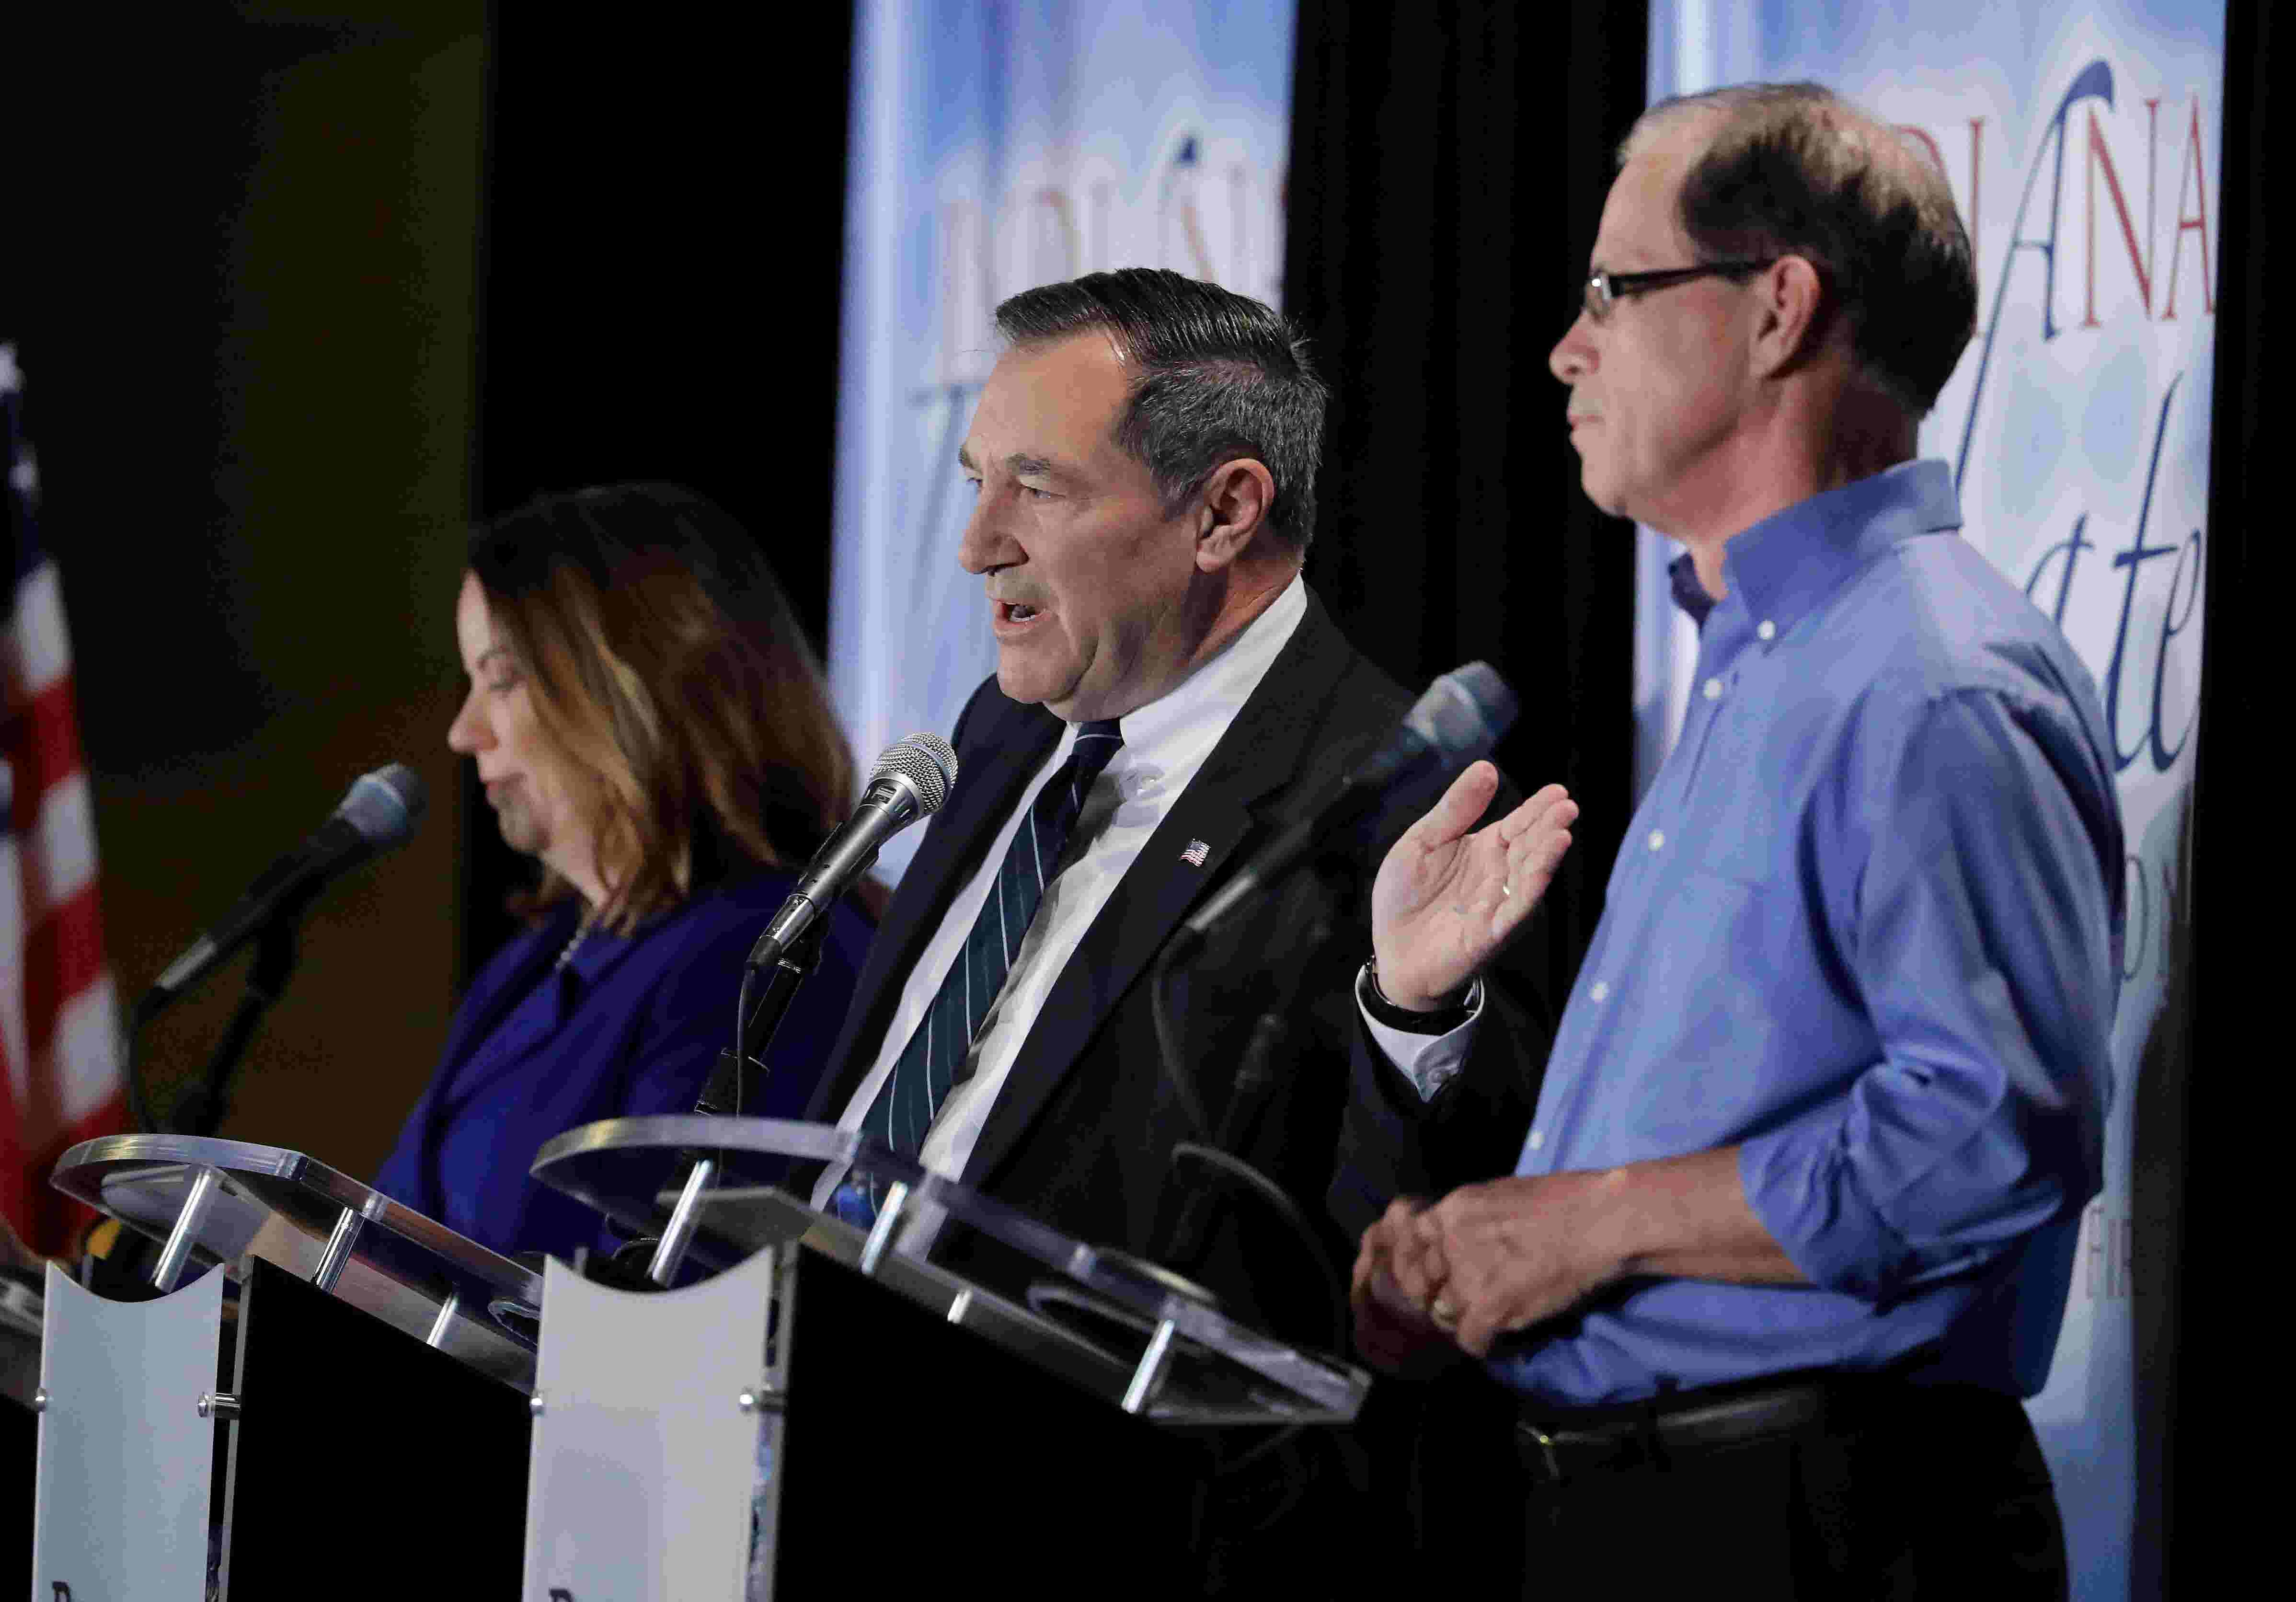 Obama Campaigns For Donnelly And Offers An Antidote To Trump